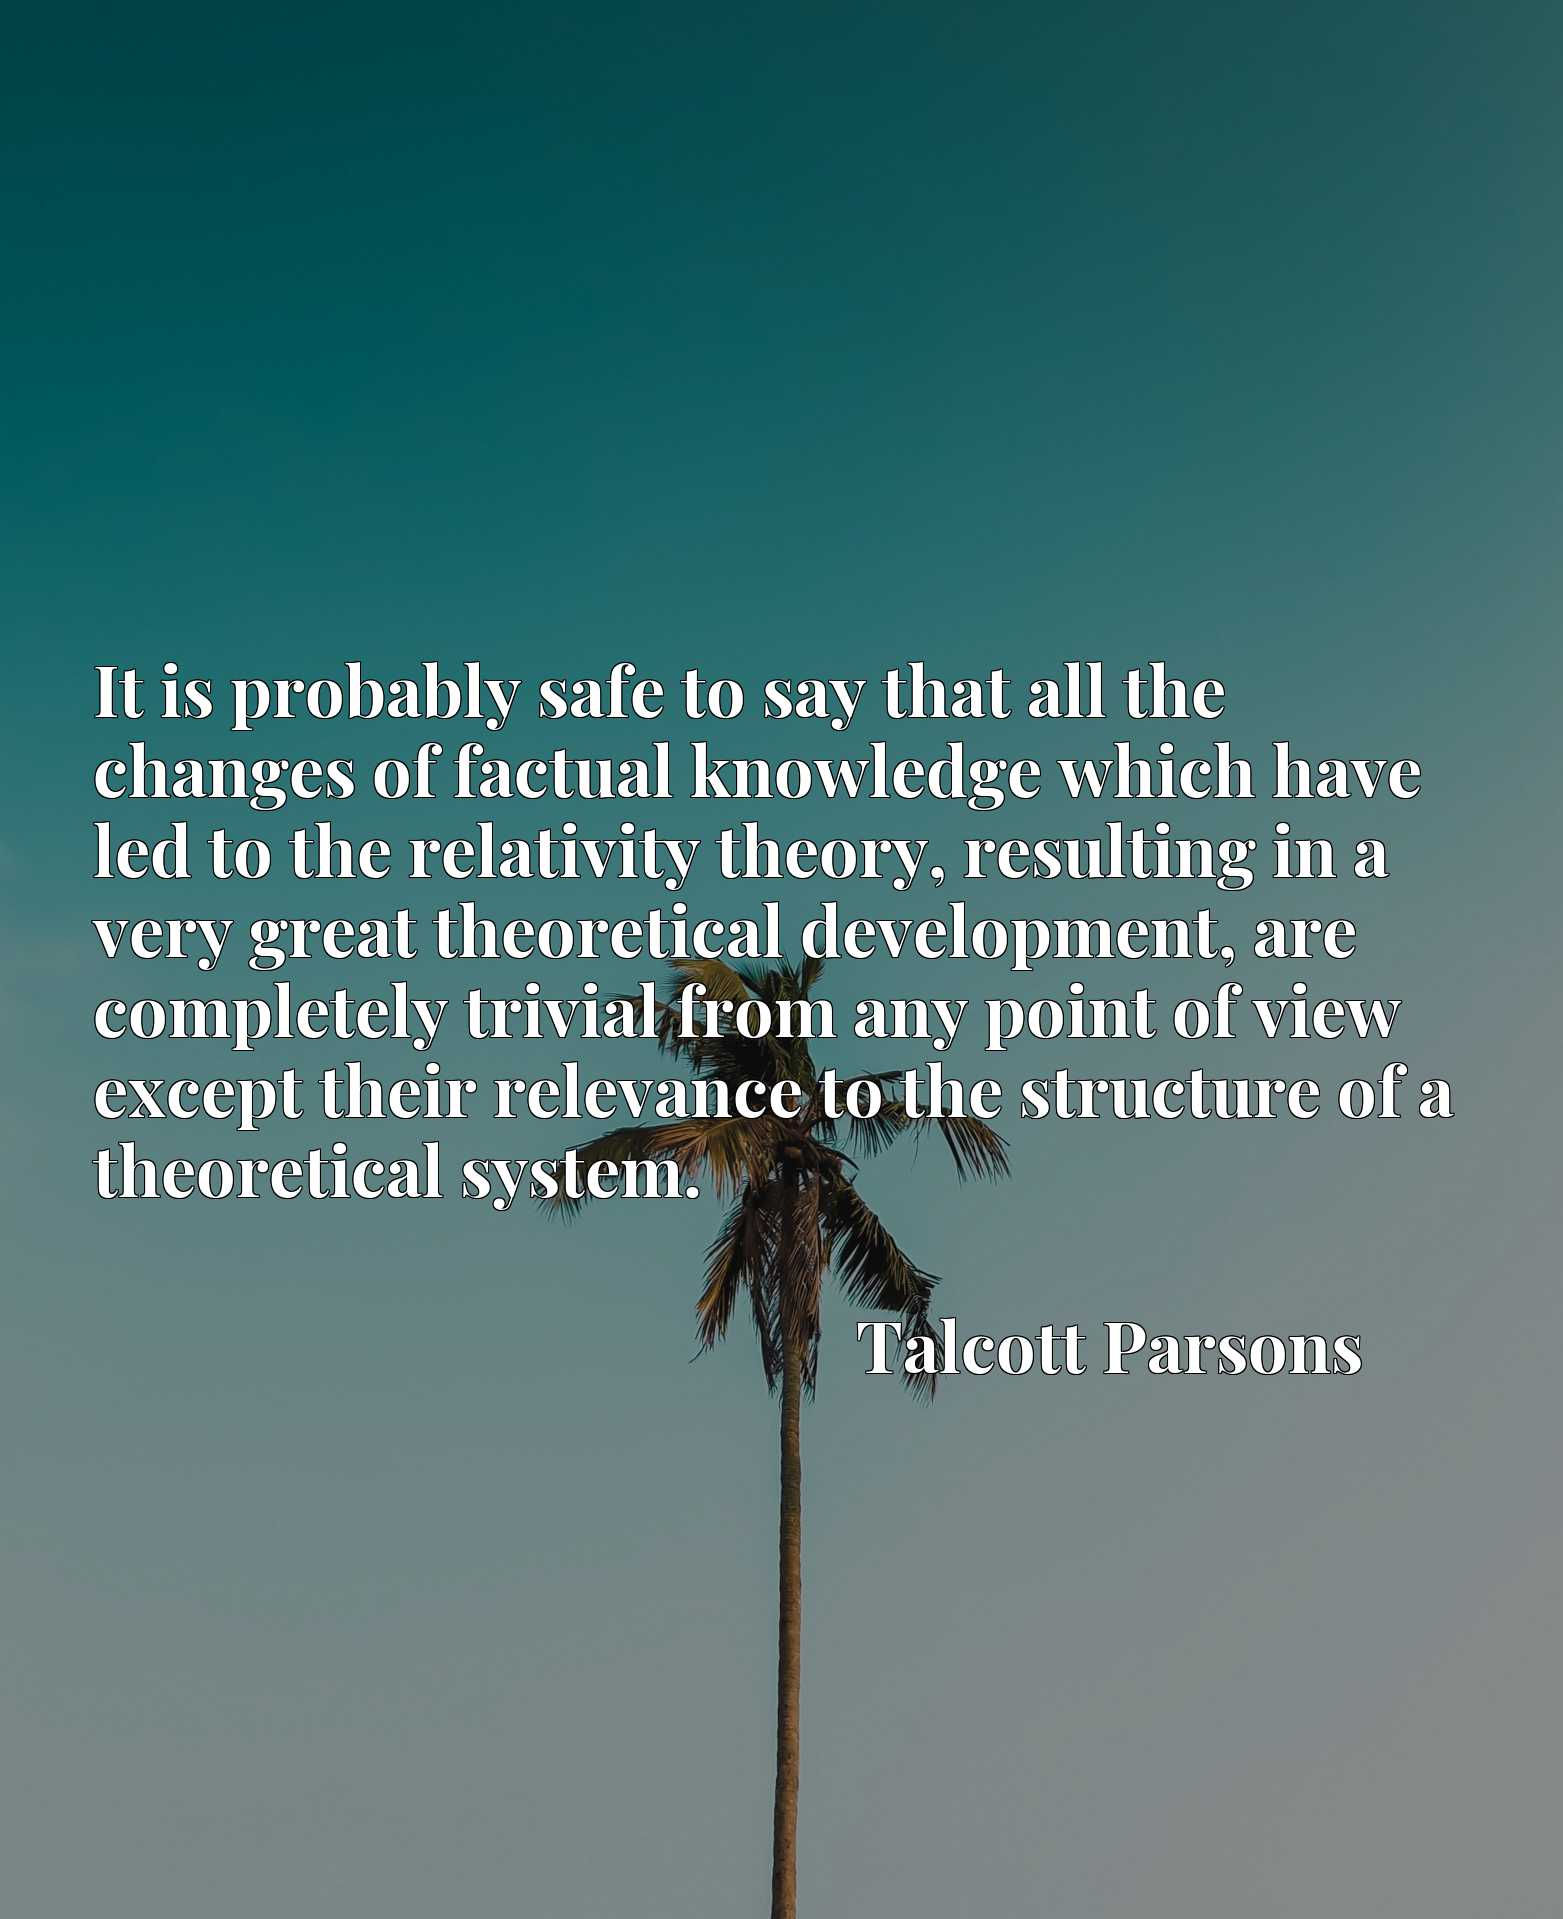 It is probably safe to say that all the changes of factual knowledge which have led to the relativity theory, resulting in a very great theoretical development, are completely trivial from any point of view except their relevance to the structure of a theoretical system.